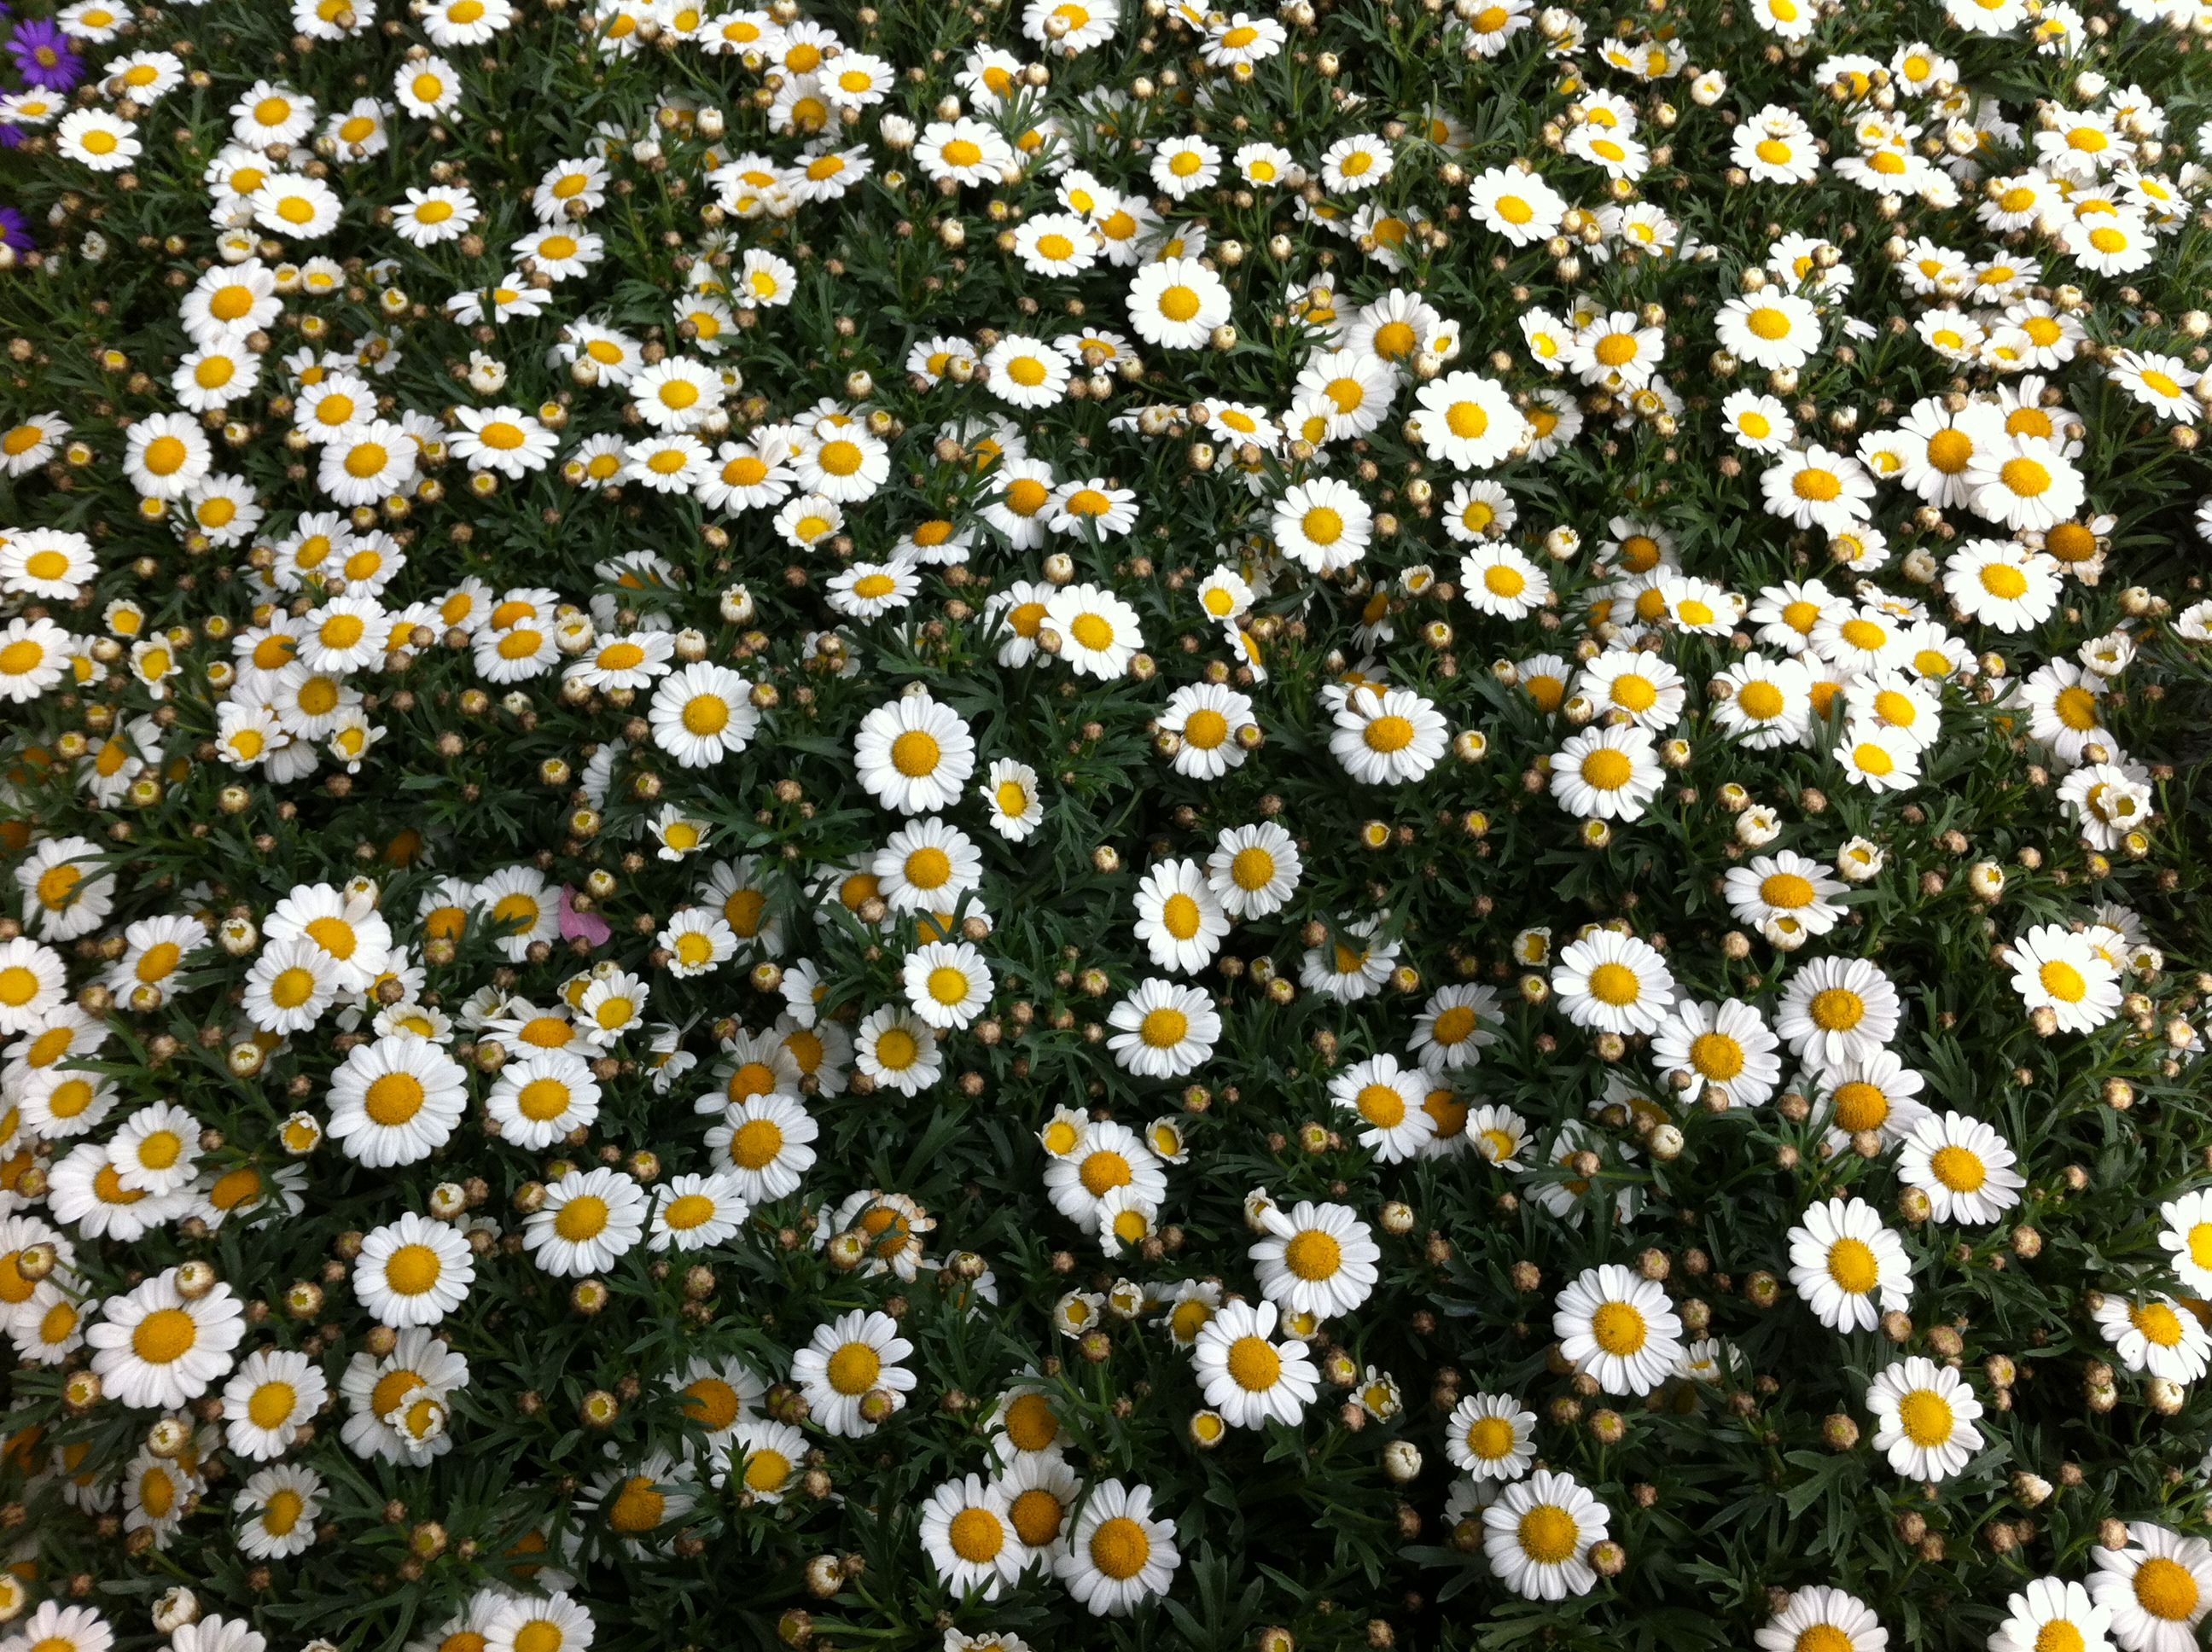 Margrieten everywhere!